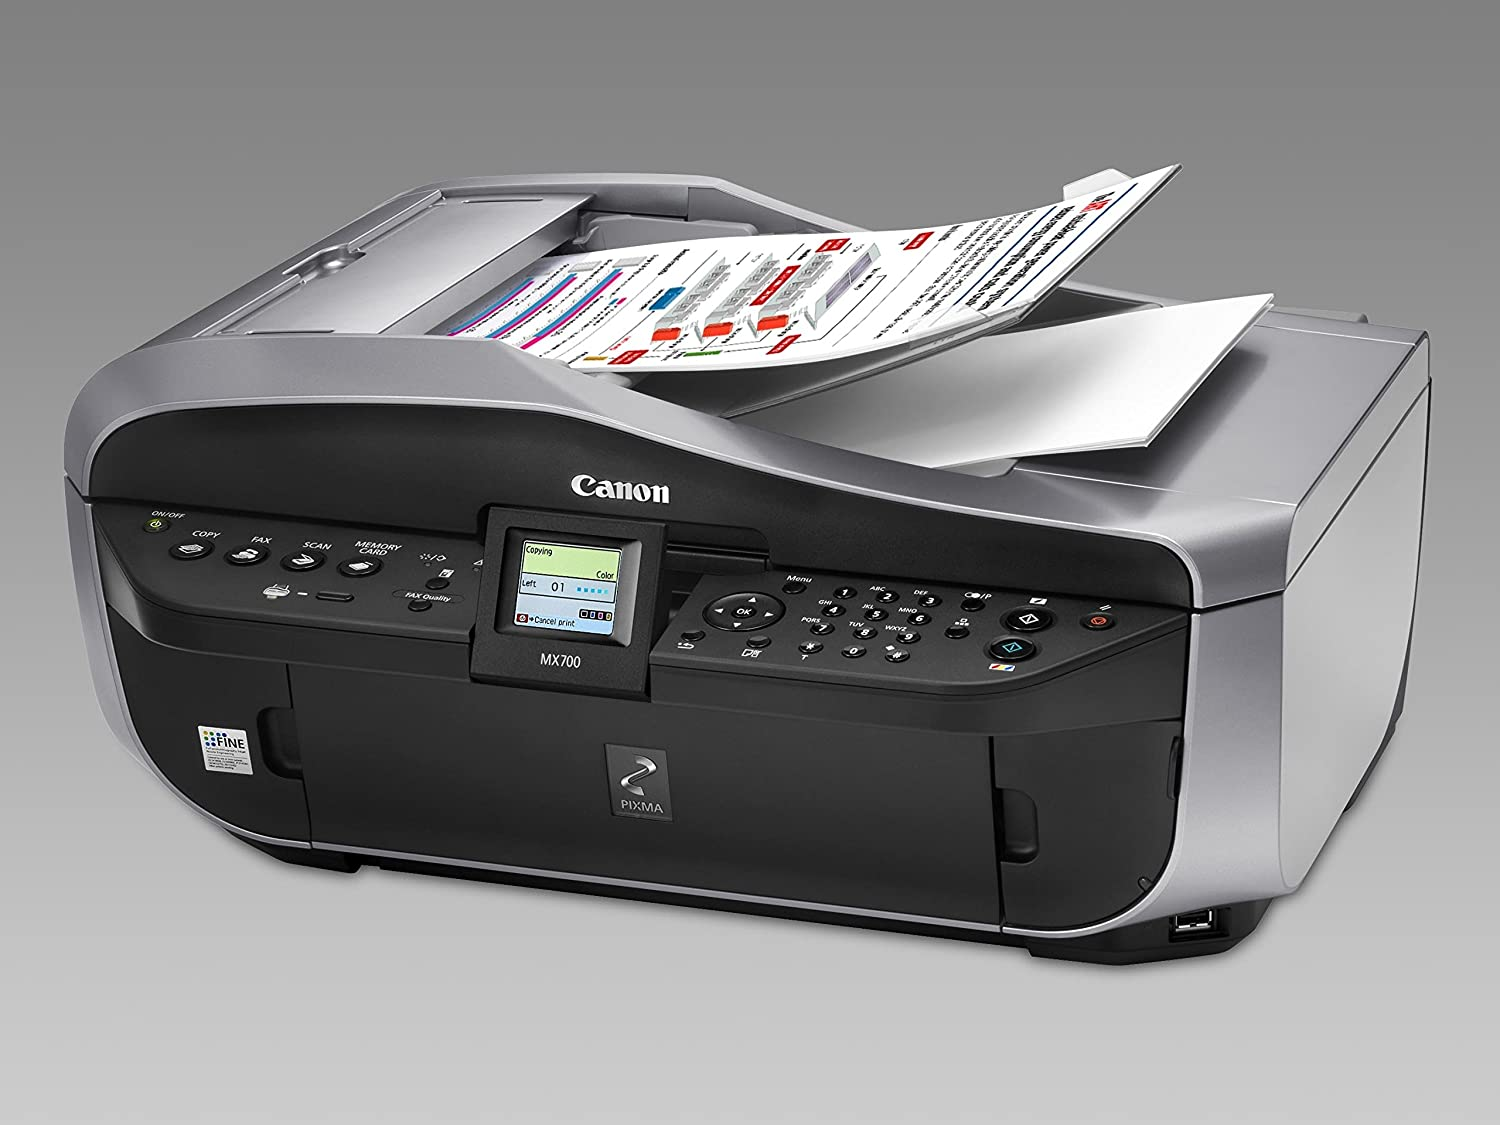 MX700 CANON PRINTER WINDOWS 10 DOWNLOAD DRIVER